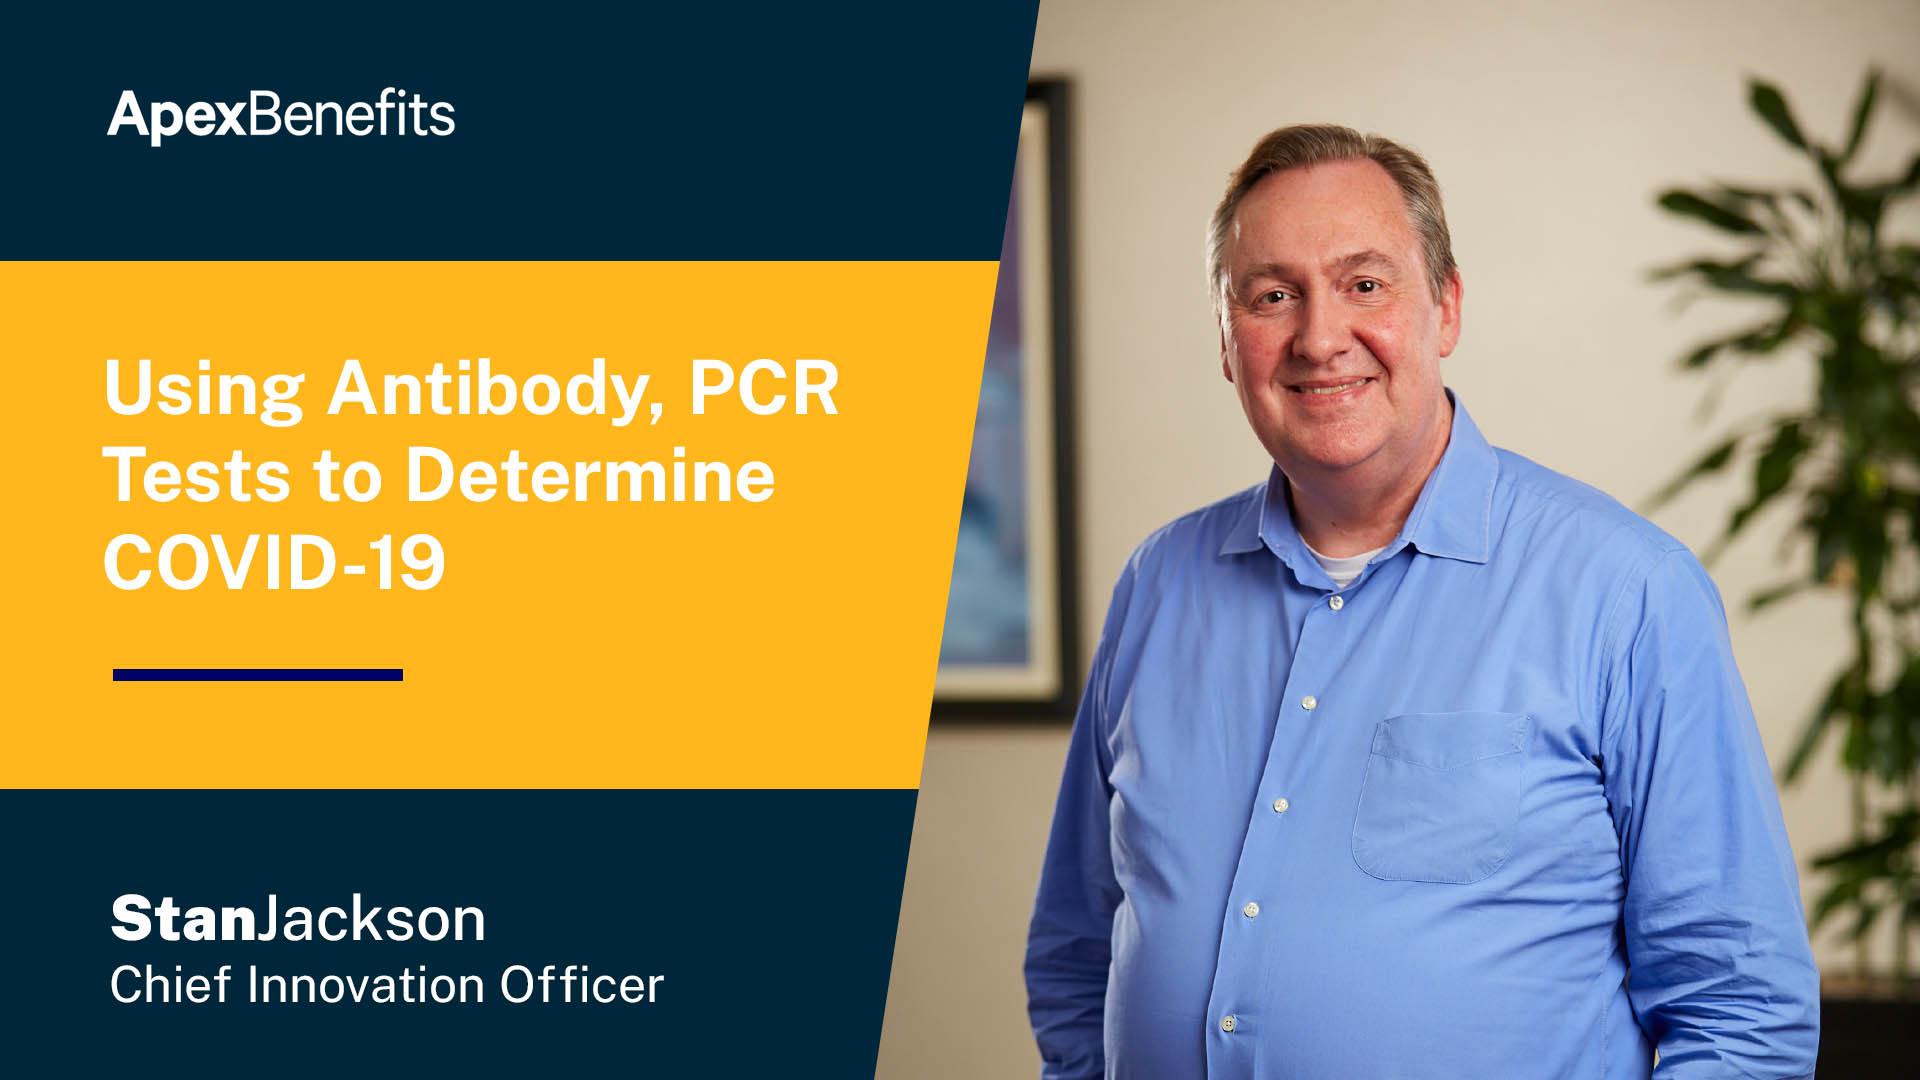 Using Antibody, PCR Testing to Determine COVID-19